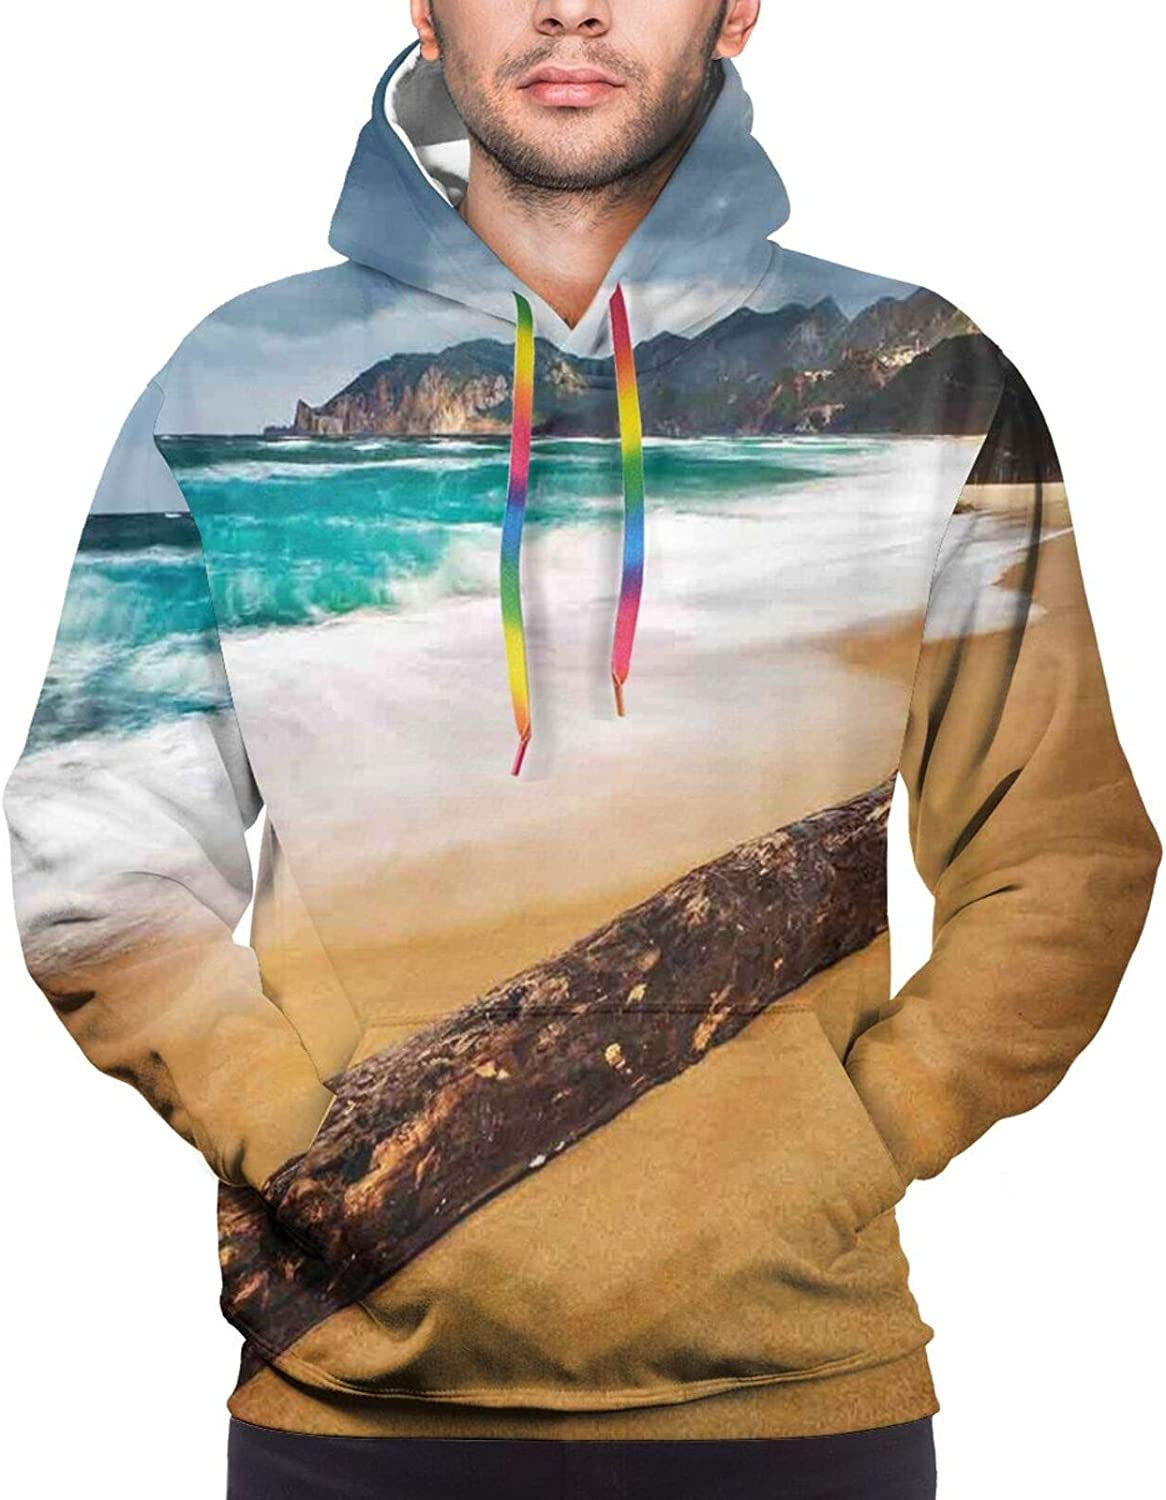 Men's Hoodies Sweatshirts,Seascape Theme Old Piece of Tree in The Beach with Stormy Weather